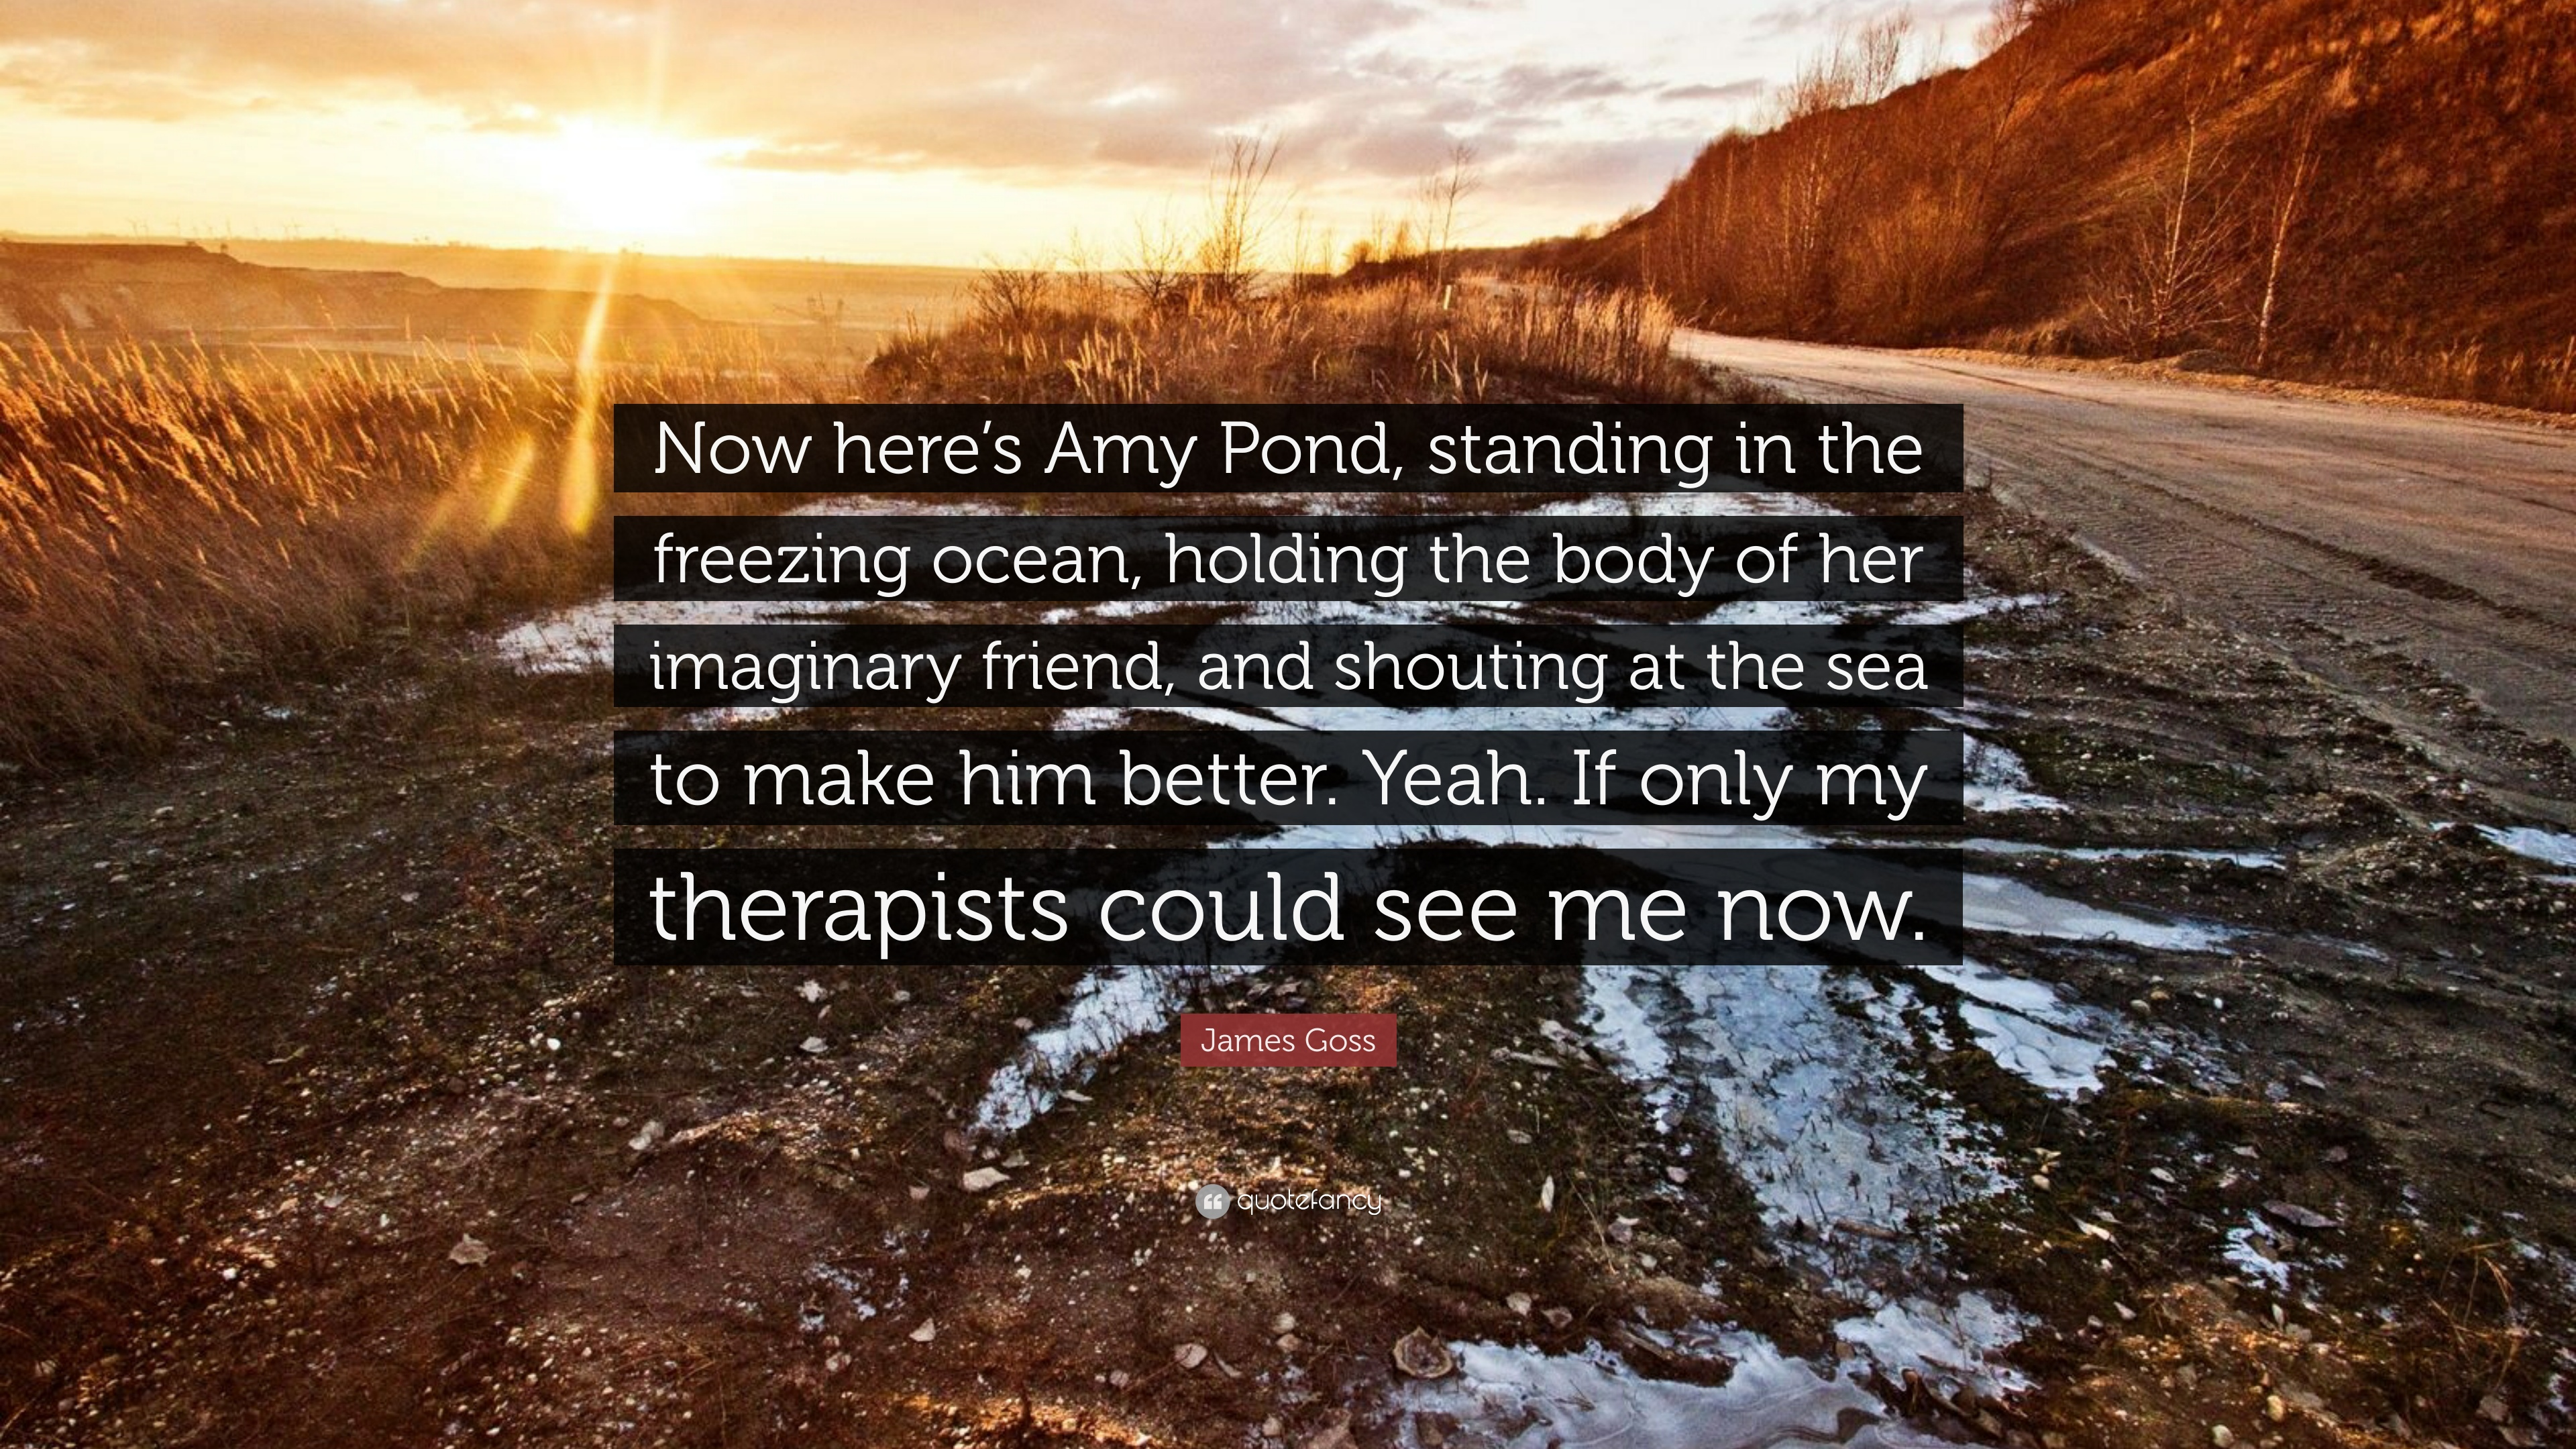 Sunday Morning Imaginary If Only >> James Goss Quote Now Here S Amy Pond Standing In The Freezing